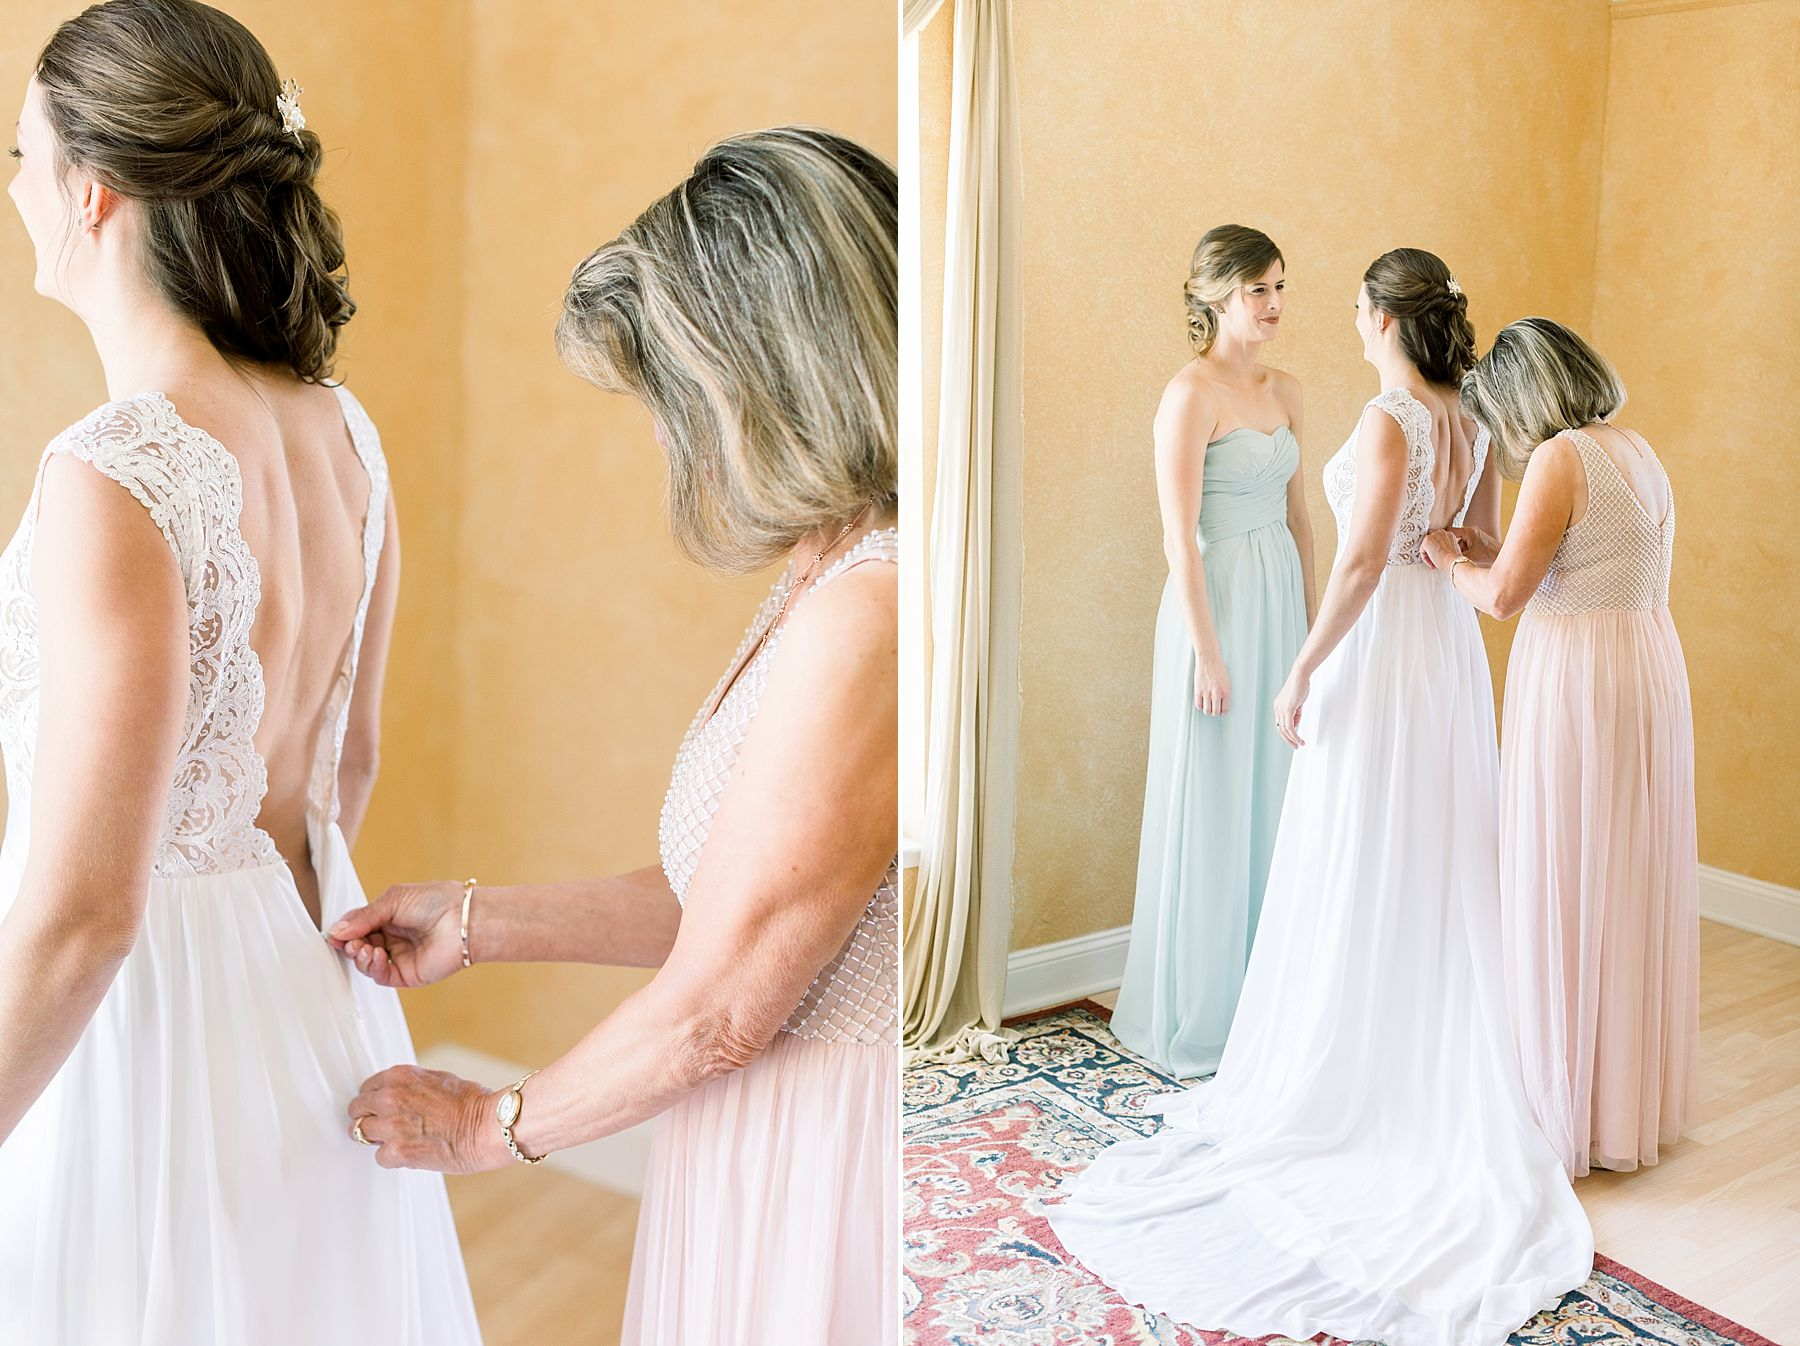 River Highlands Ranch Wedding - Brittany and Mike - Ashley Baumgartner - Sacramento Wedding Photographer_0010.jpg